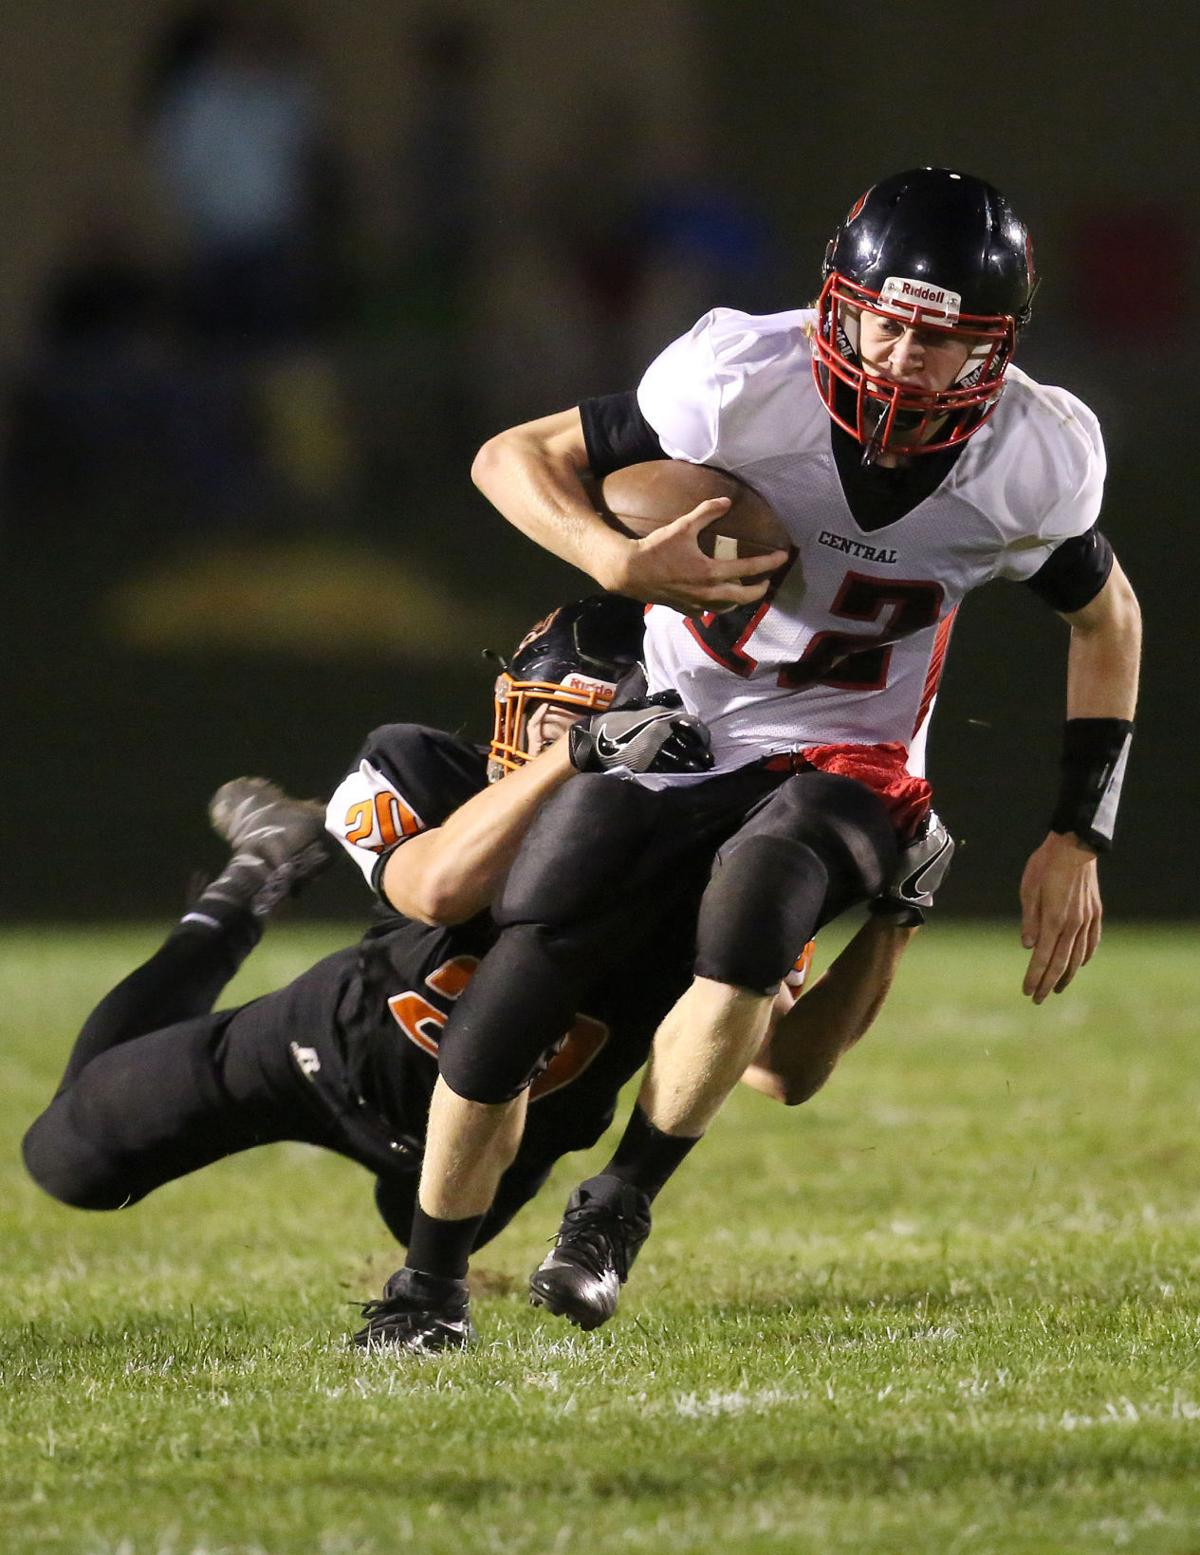 High school football preview: La Crosse Central ready to climb back into contention